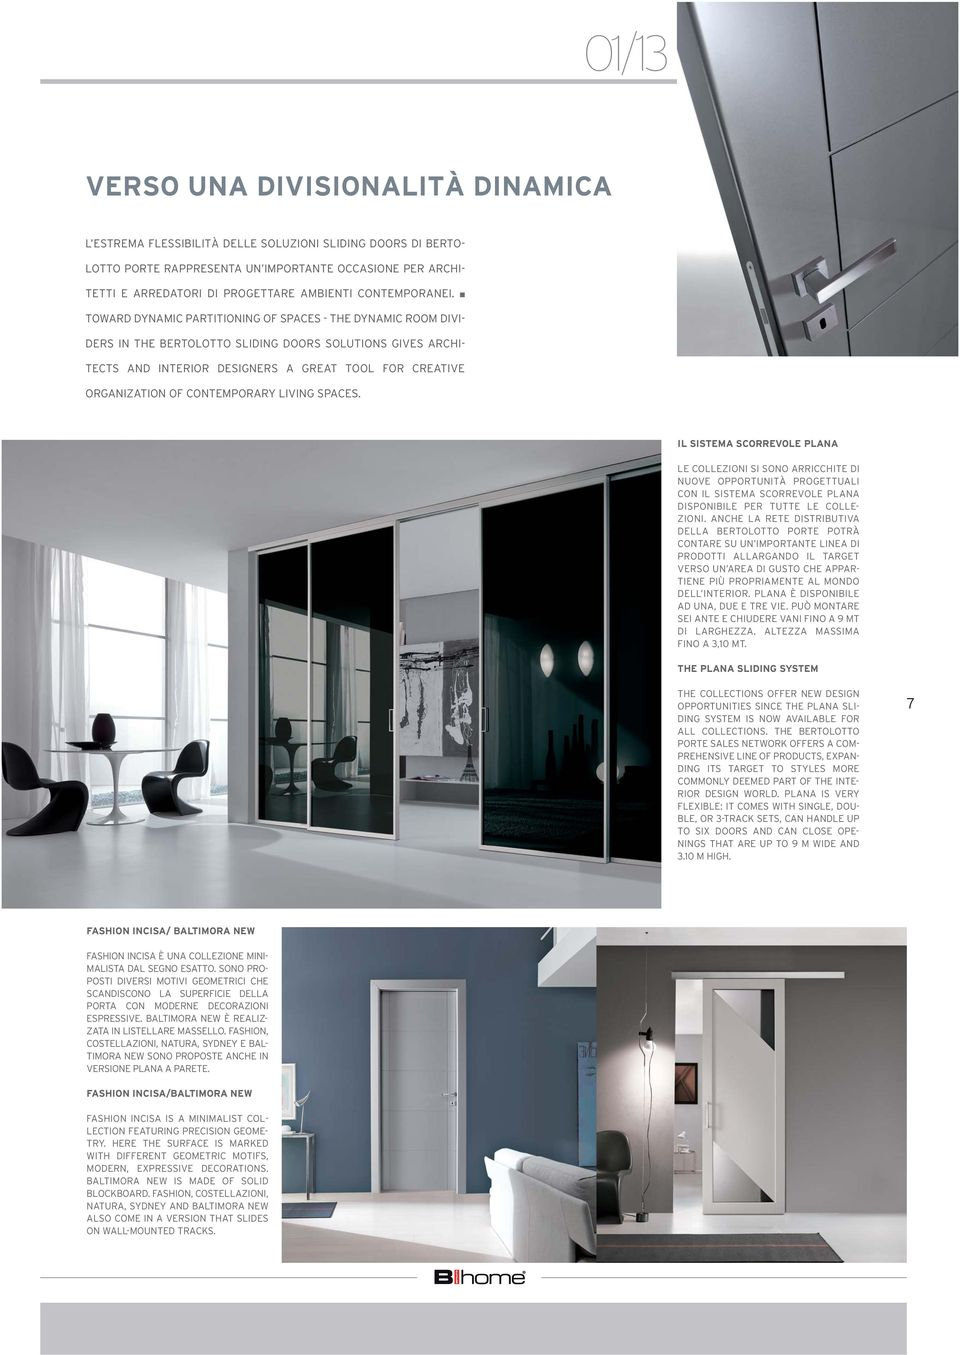 n TOWARD DYNAMIC PARTITIONING OF SPACES - THE DYNAMIC ROOM DIVI- DERS IN THE BERTOLOTTO SLIDING DOORS SOLUTIONS GIVES ARCHI- TECTS AND INTERIOR DESIGNERS A GREAT TOOL FOR CREATIVE ORGANIZATION OF